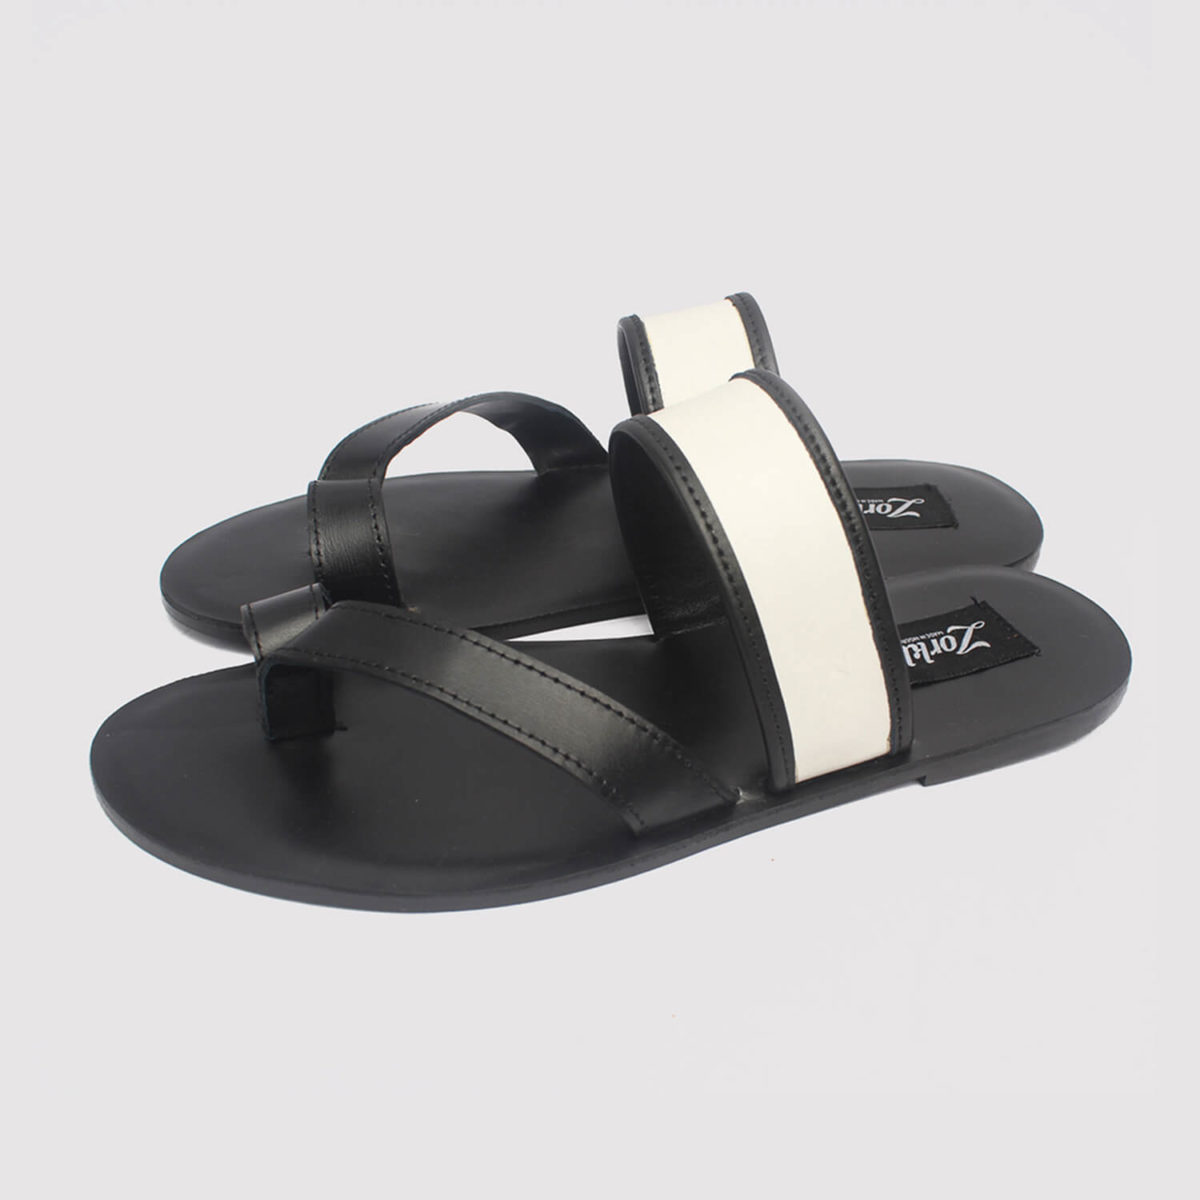 barry slippers black leather zorkle shoes in lagos nigeria